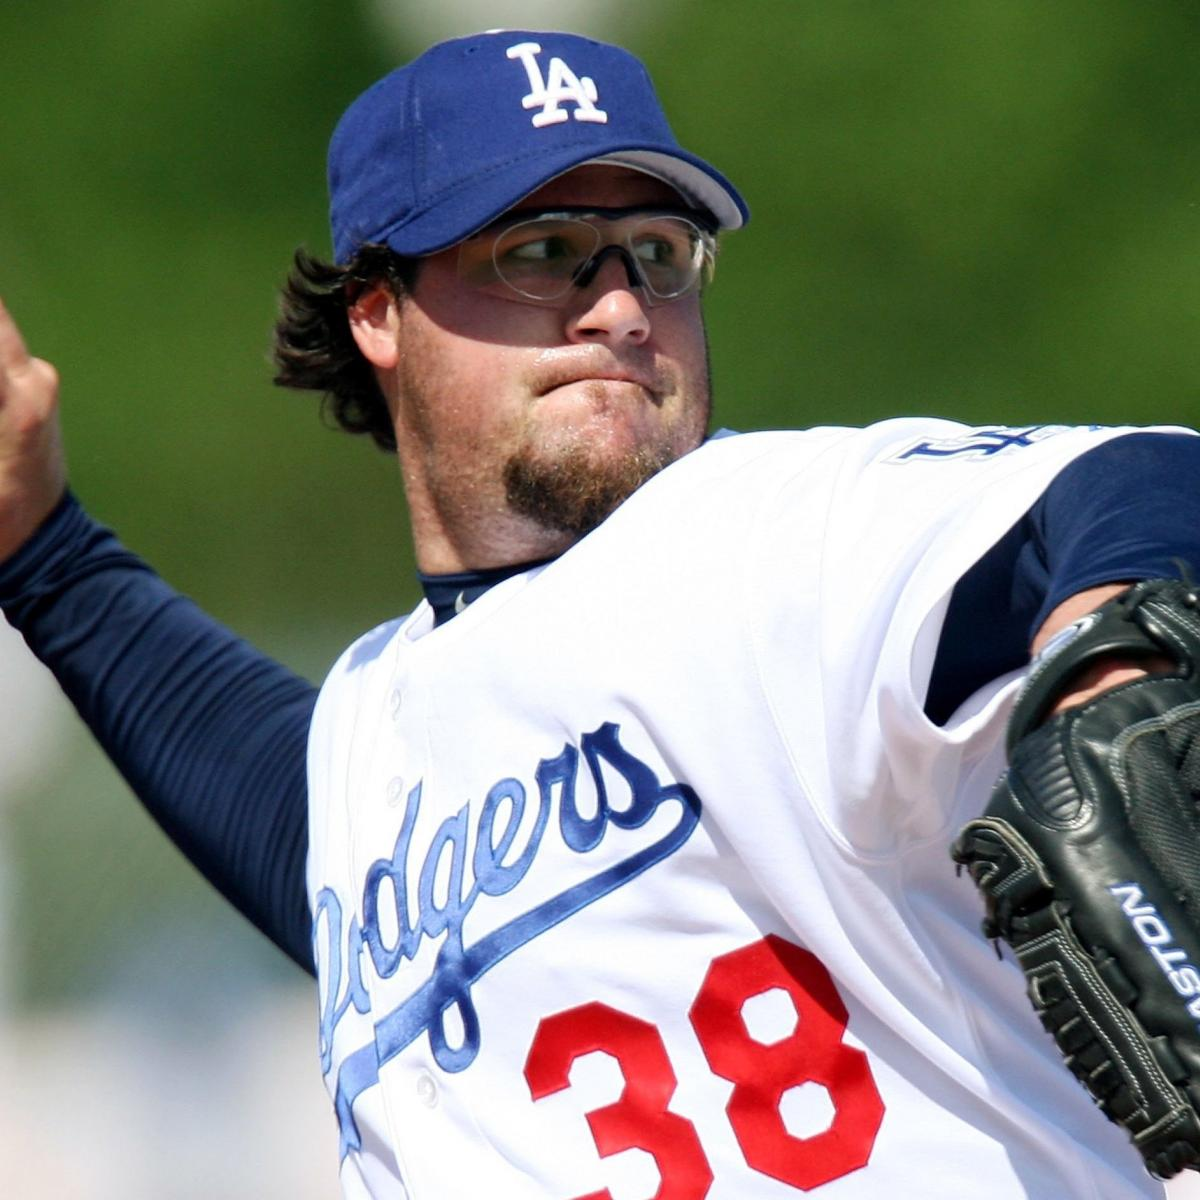 Were '80 Percent' L.A. Dodgers HGH Allegations the ...